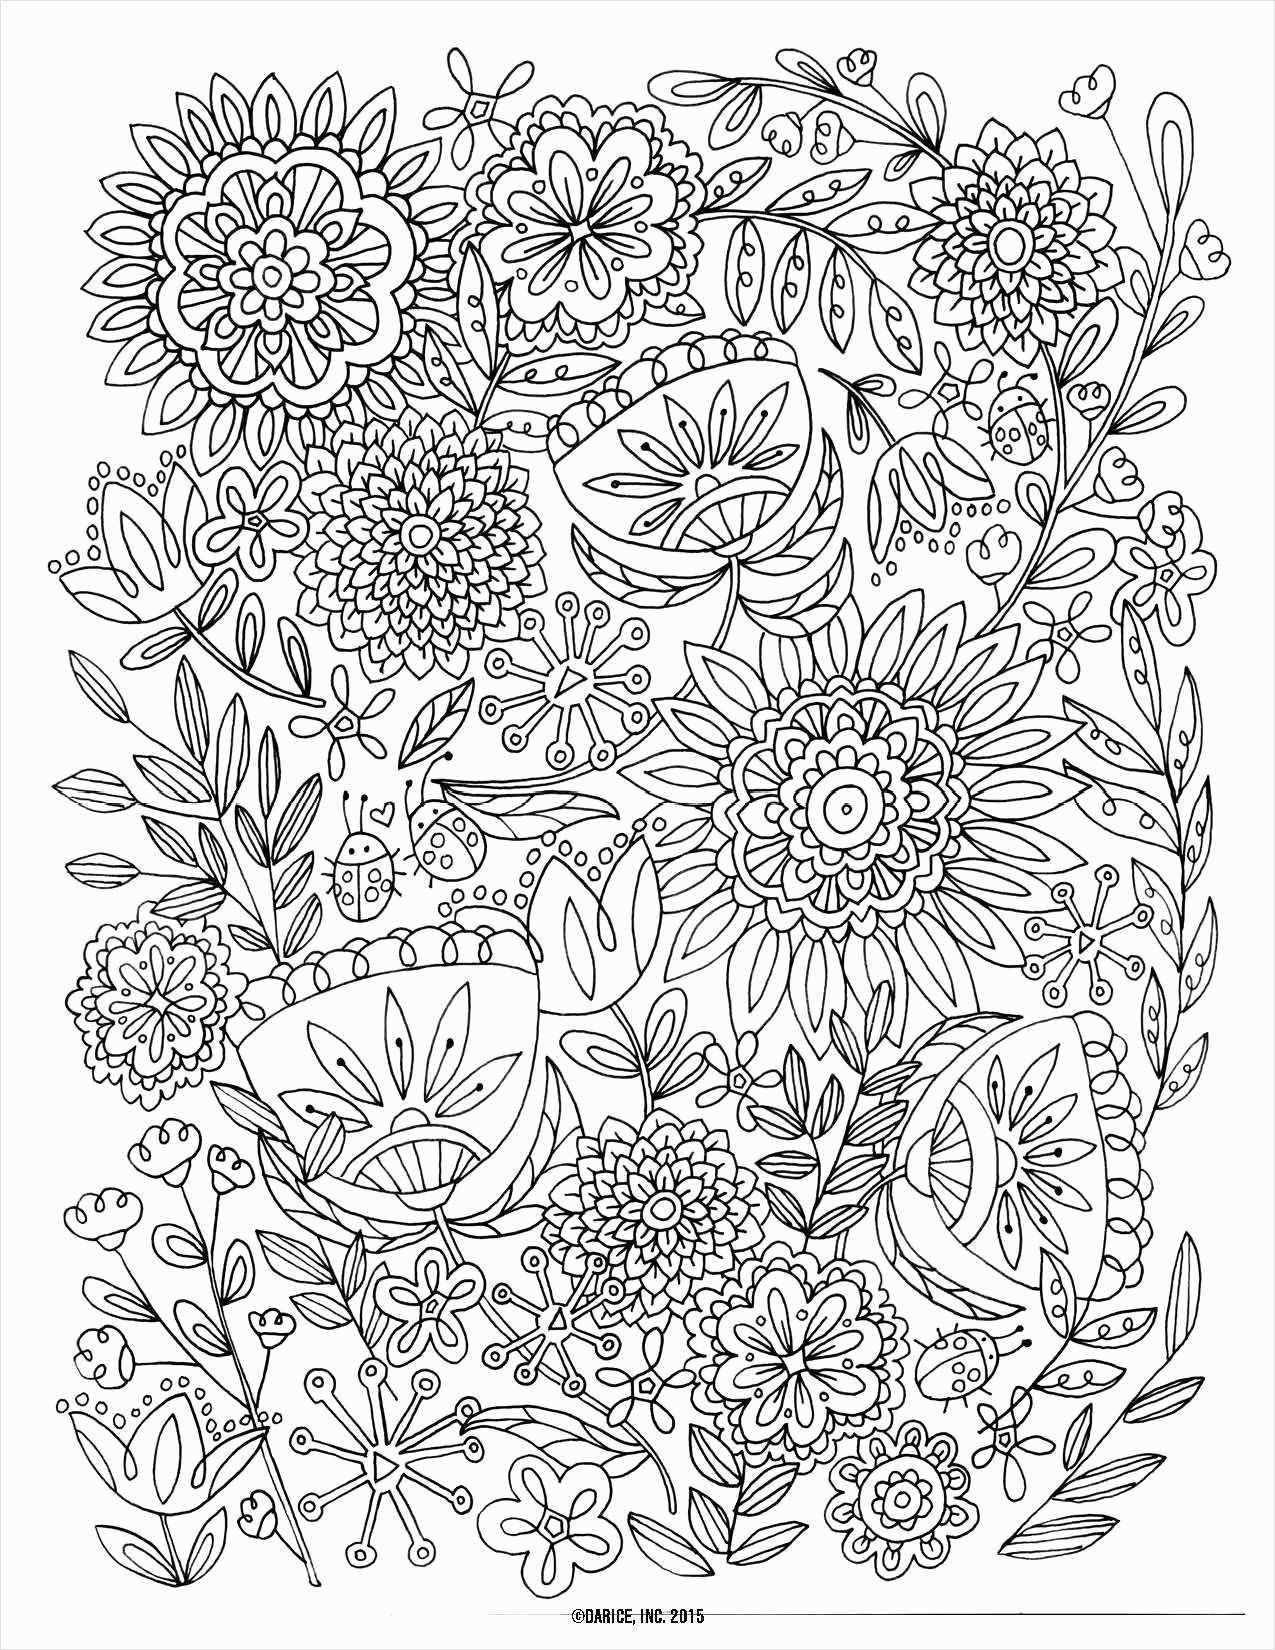 Inspirational Quotes Coloring Pages New Positive Quotes Coloring Pages Inspirational In Summer Coloring Pages Heart Coloring Pages Coloring Pages Inspirational